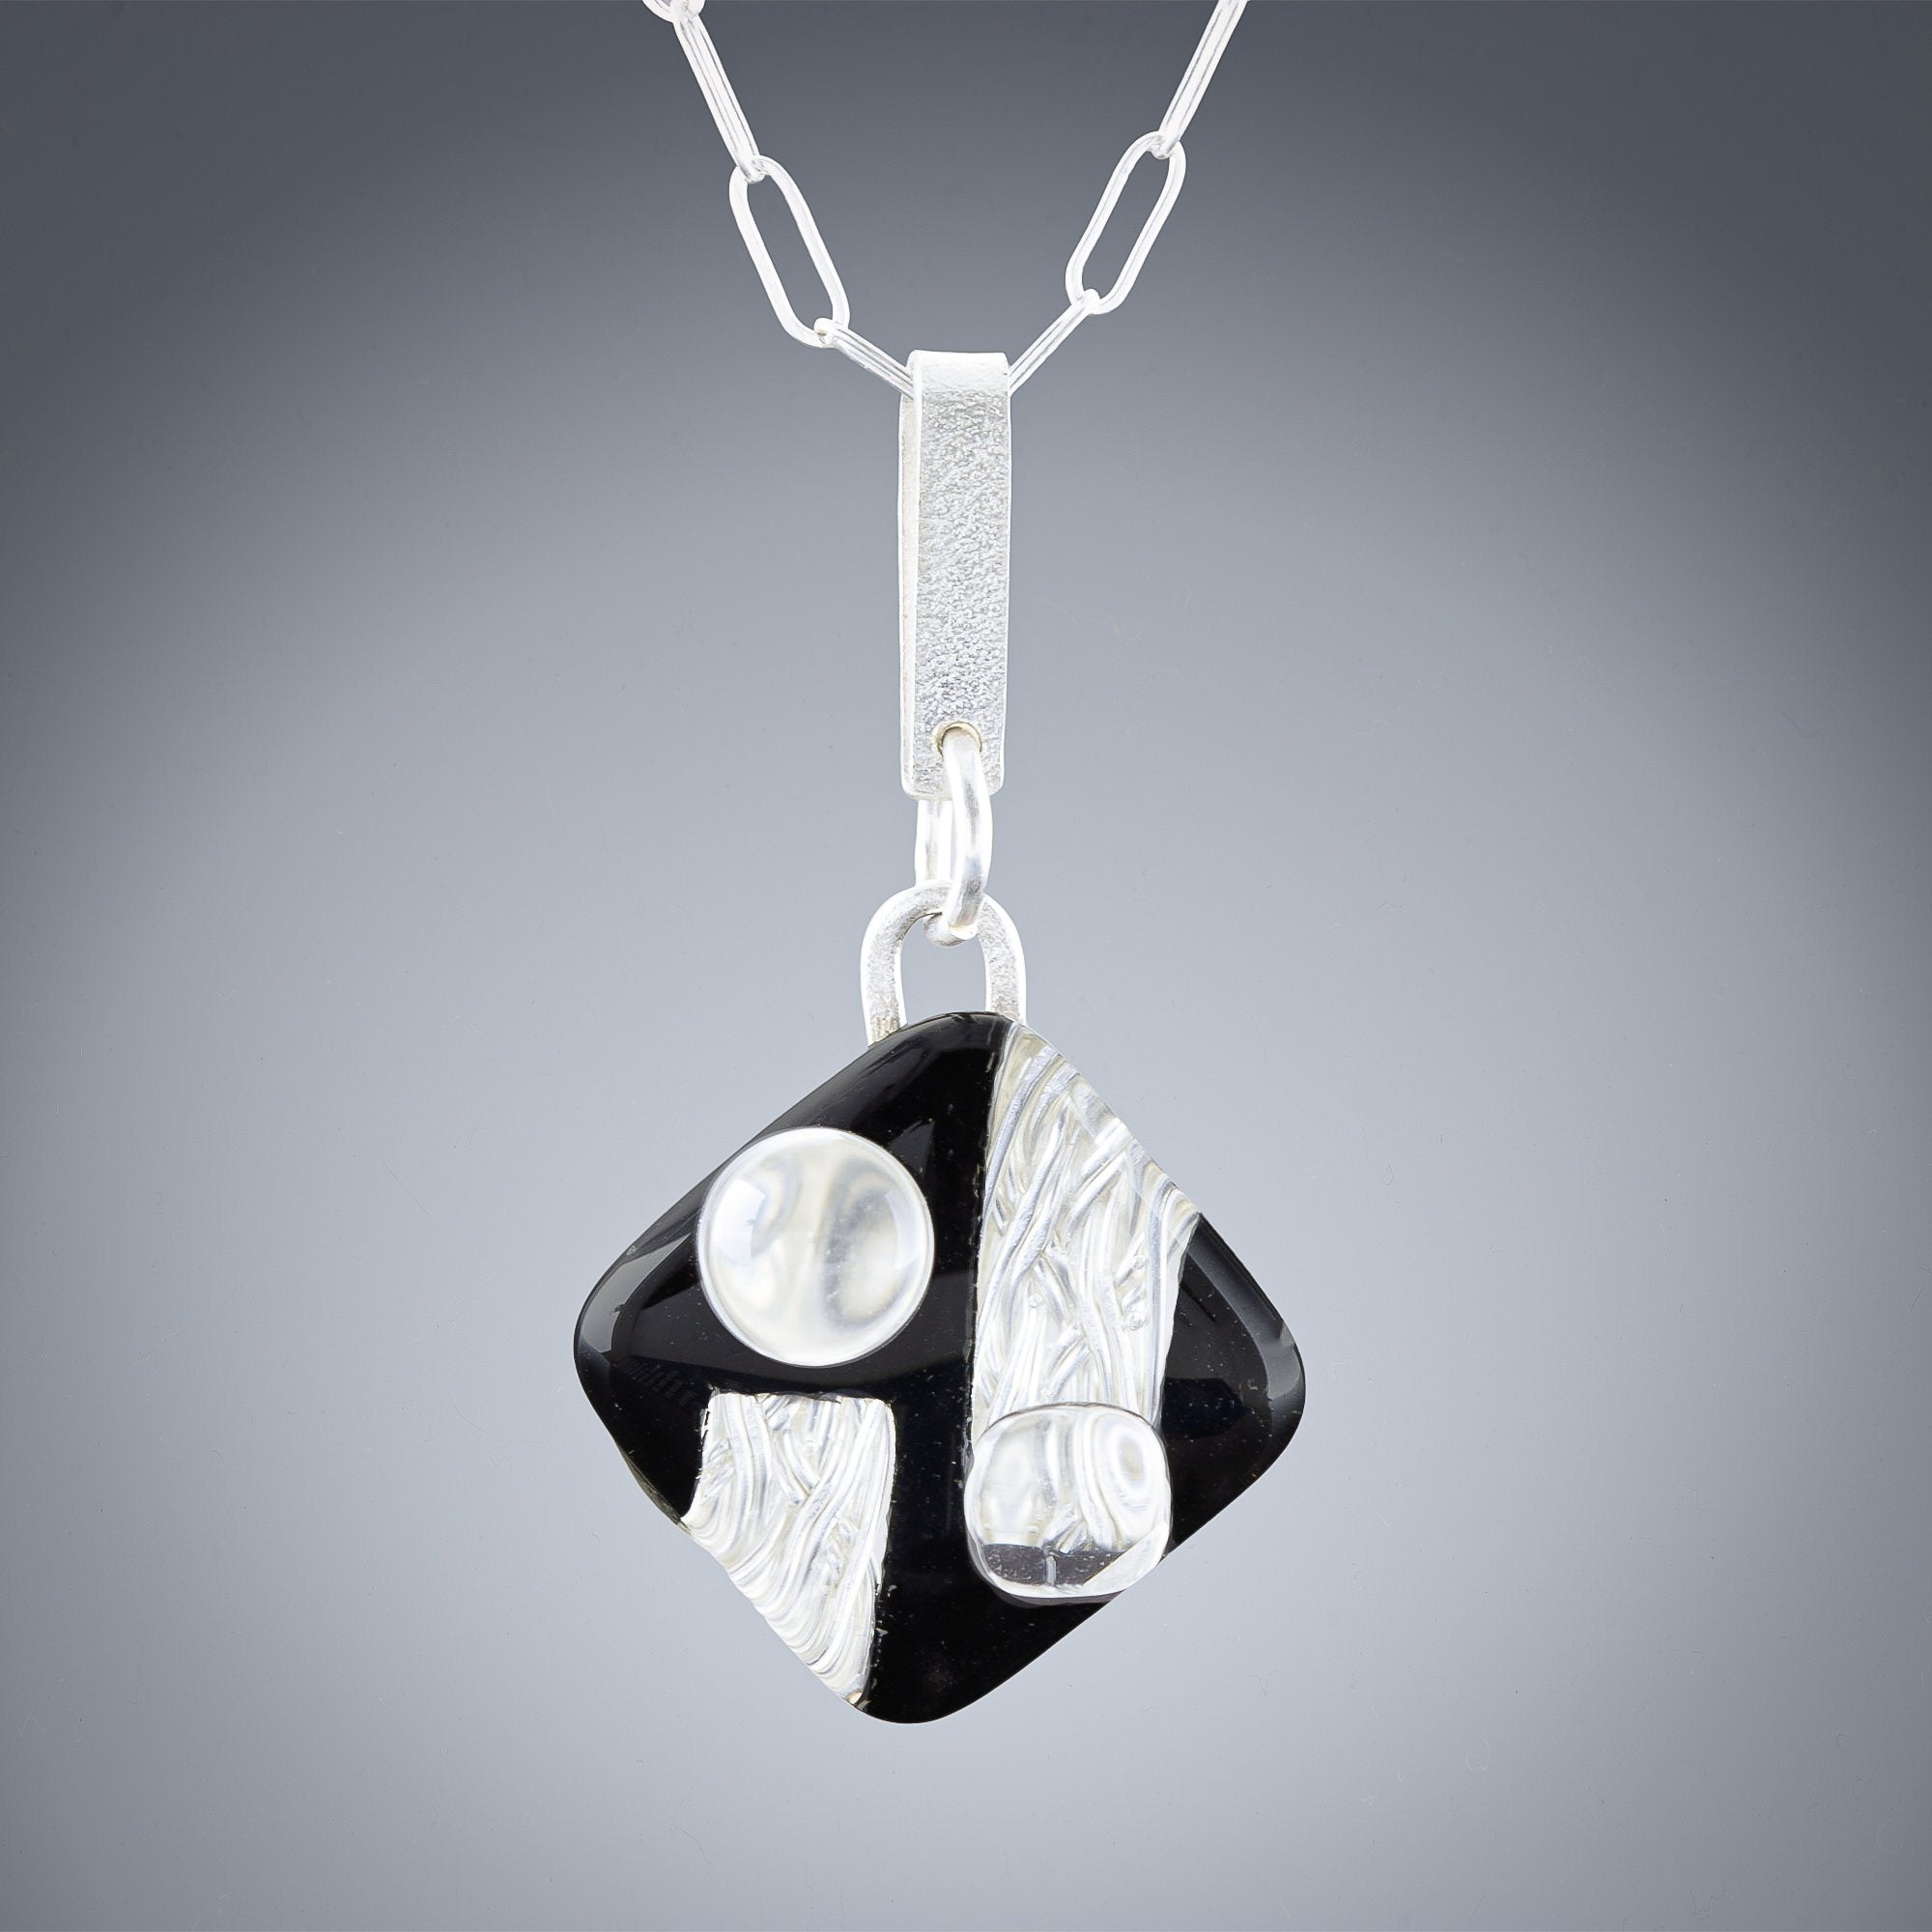 Tahmi - the art of woven metal: Woven Art Deco Handmade Pendant